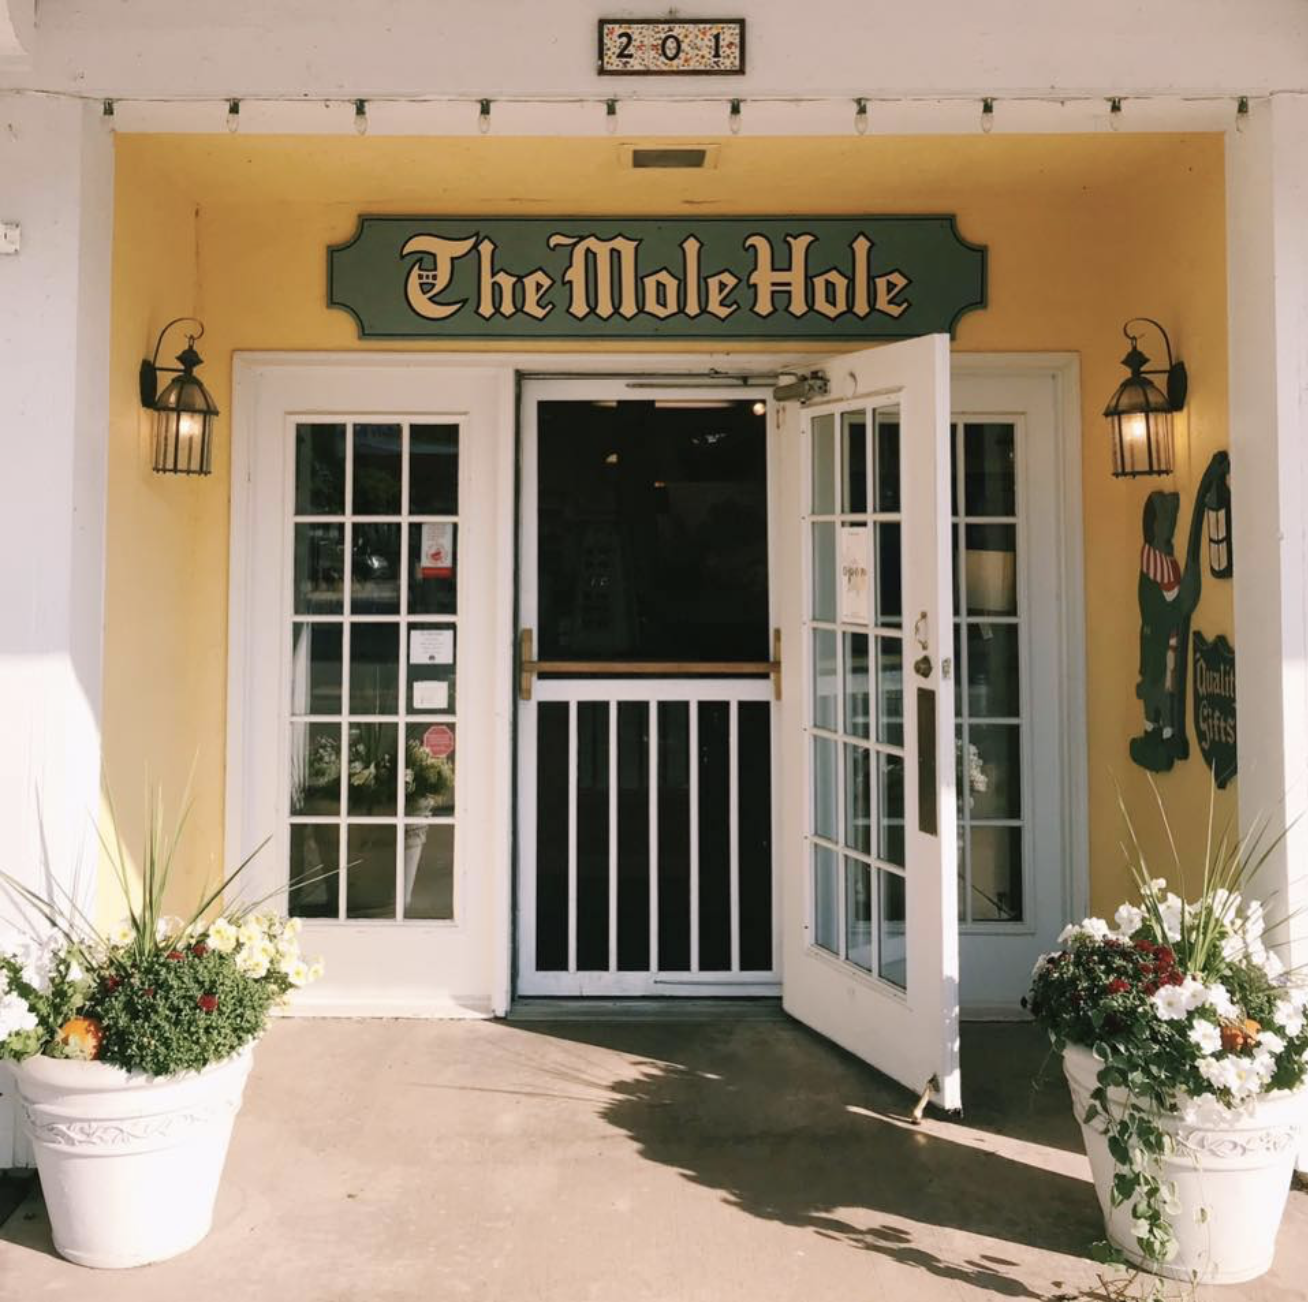 The Mole Hole of Sault Ste. Marie: Gifts, Jewelry, Baby, Apparel, & Home Decor